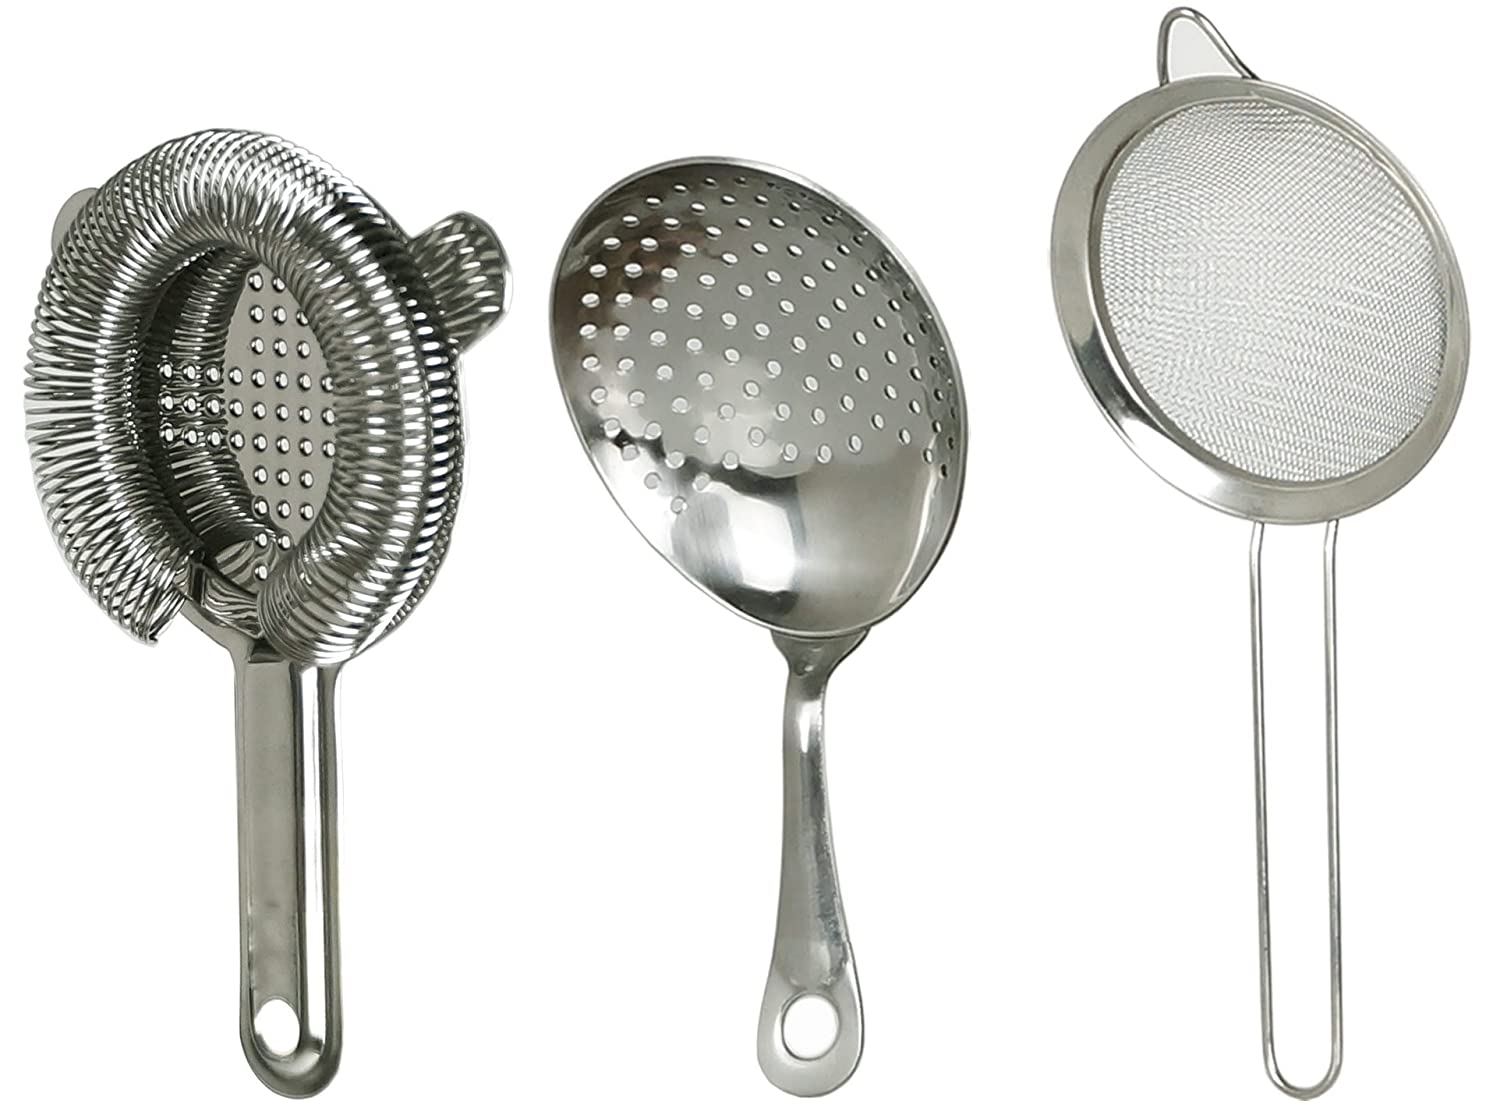 Jillmo 3-Piece Stainless Steel Cocktail Strainer Set (Hawthorn Strainer, Julep Strainer, Sifter. )